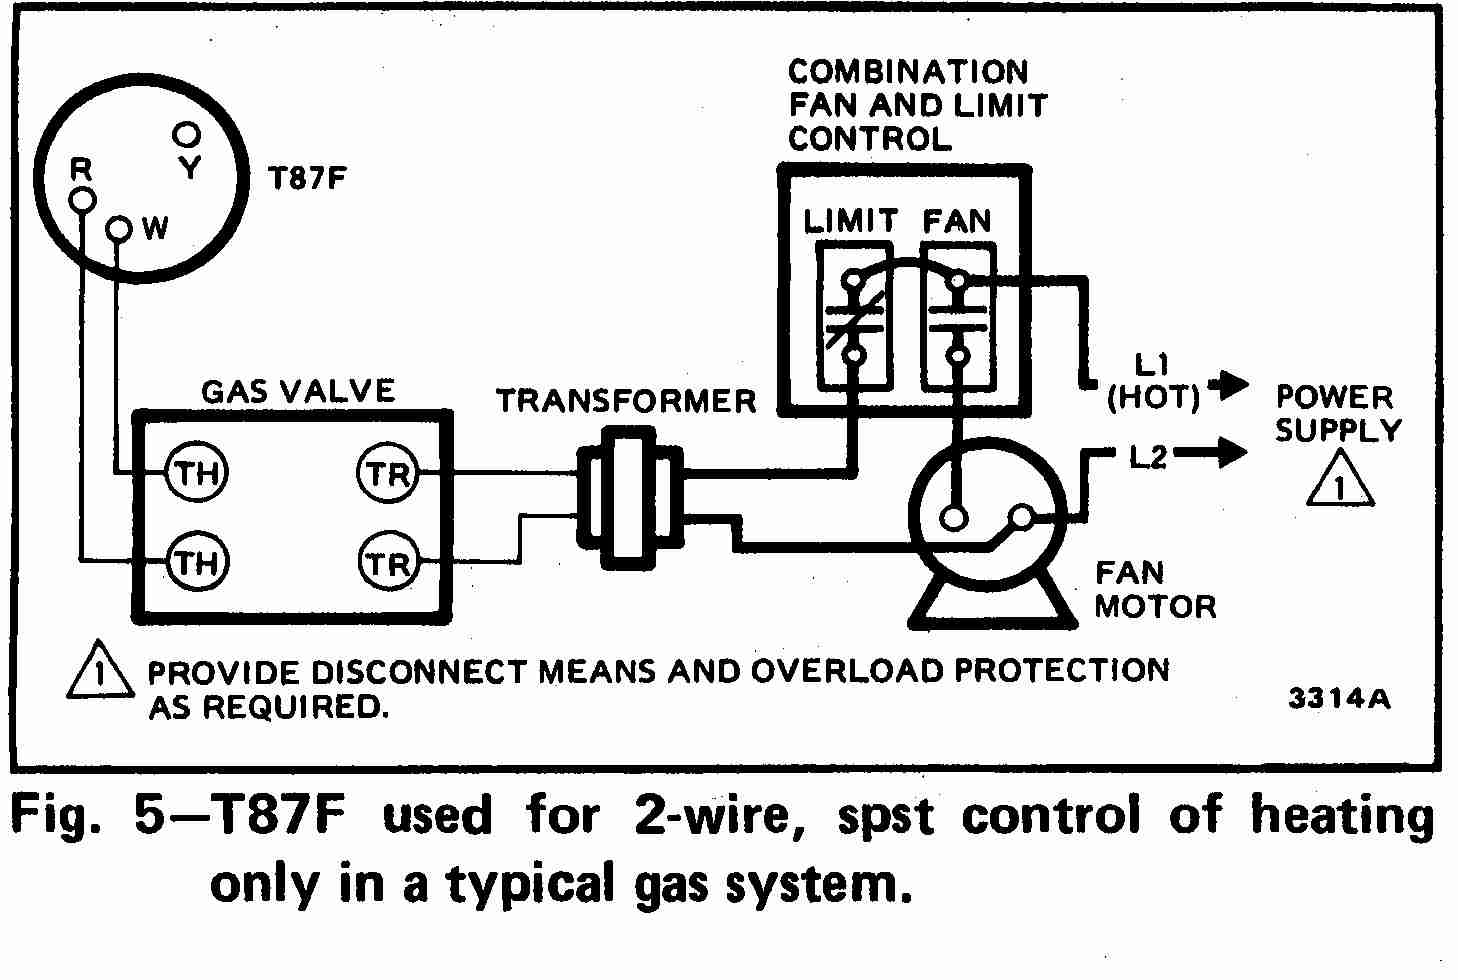 TT_T87F_0002_2Wg_DJF guide to wiring connections for room thermostats Furnace Air Flow Direction Diagram at bakdesigns.co